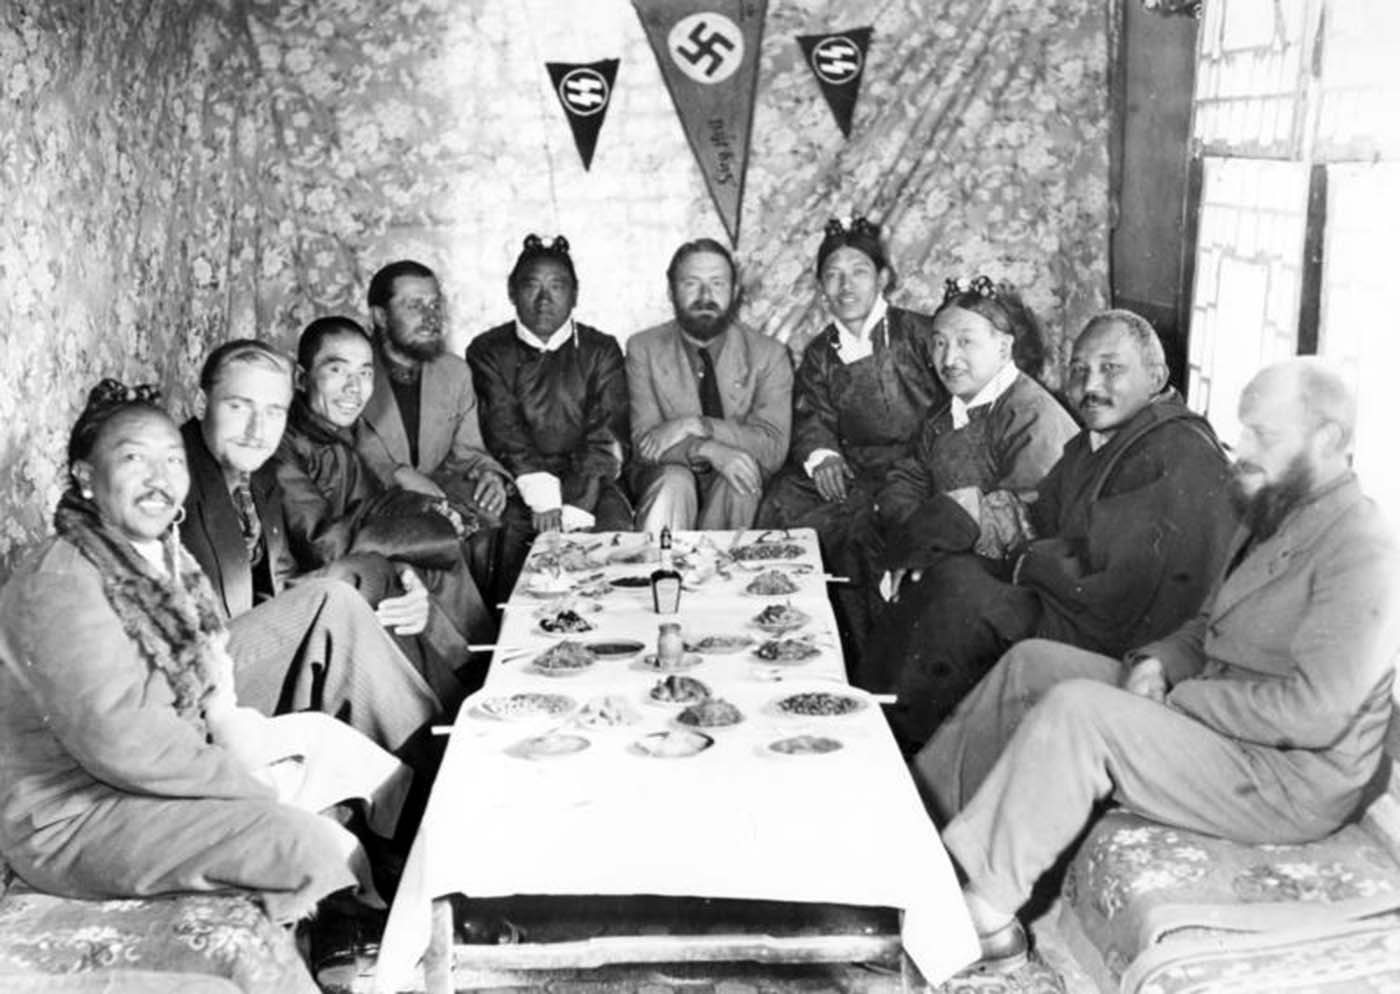 Under SS pennants and a swastika, the expedition members are entertaining some Tibetan dignitaries and the Chinese representative in Lhasa.